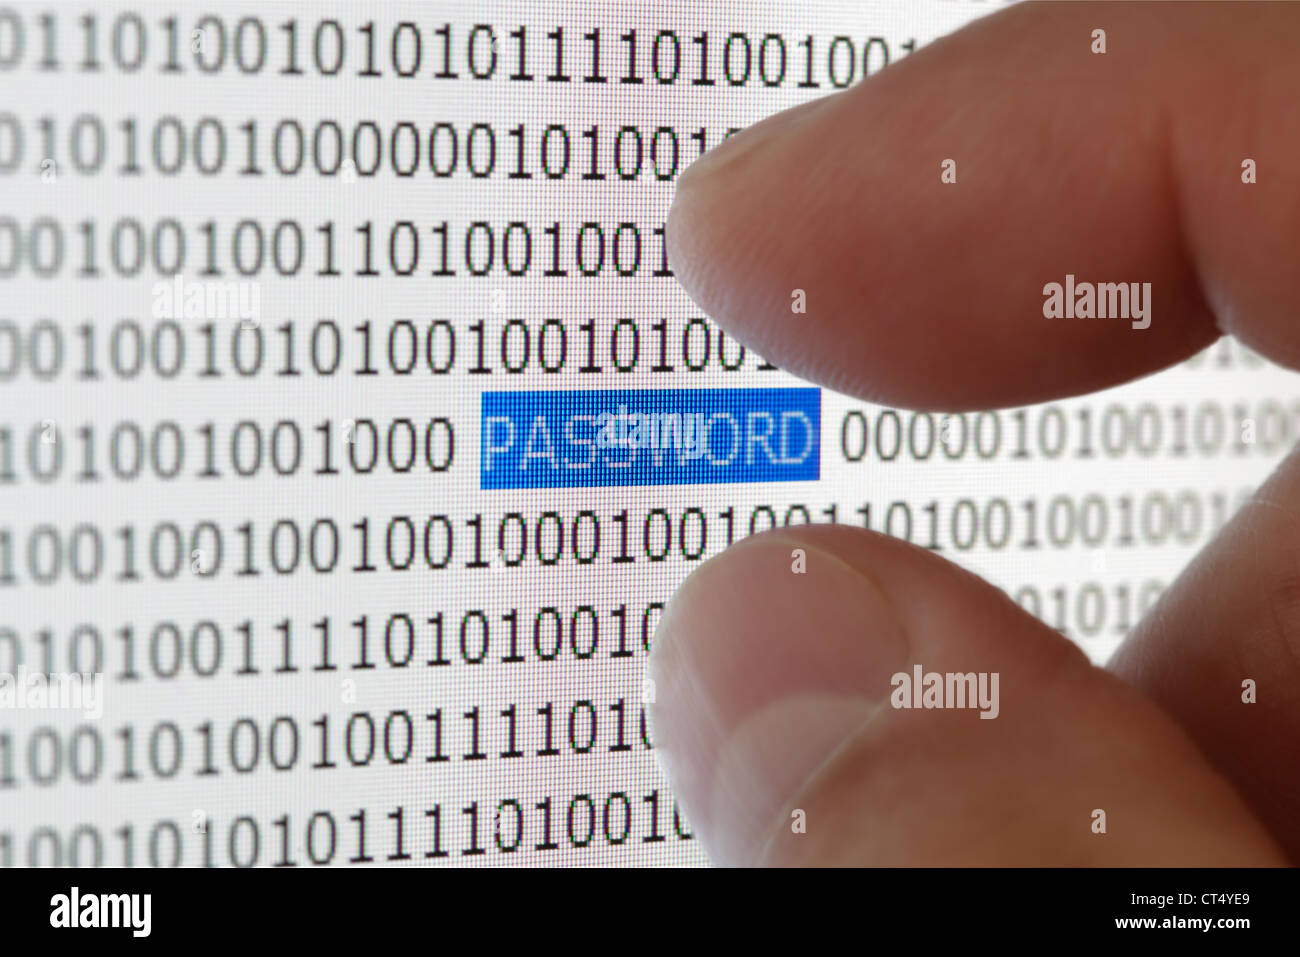 Password security - Stock Image